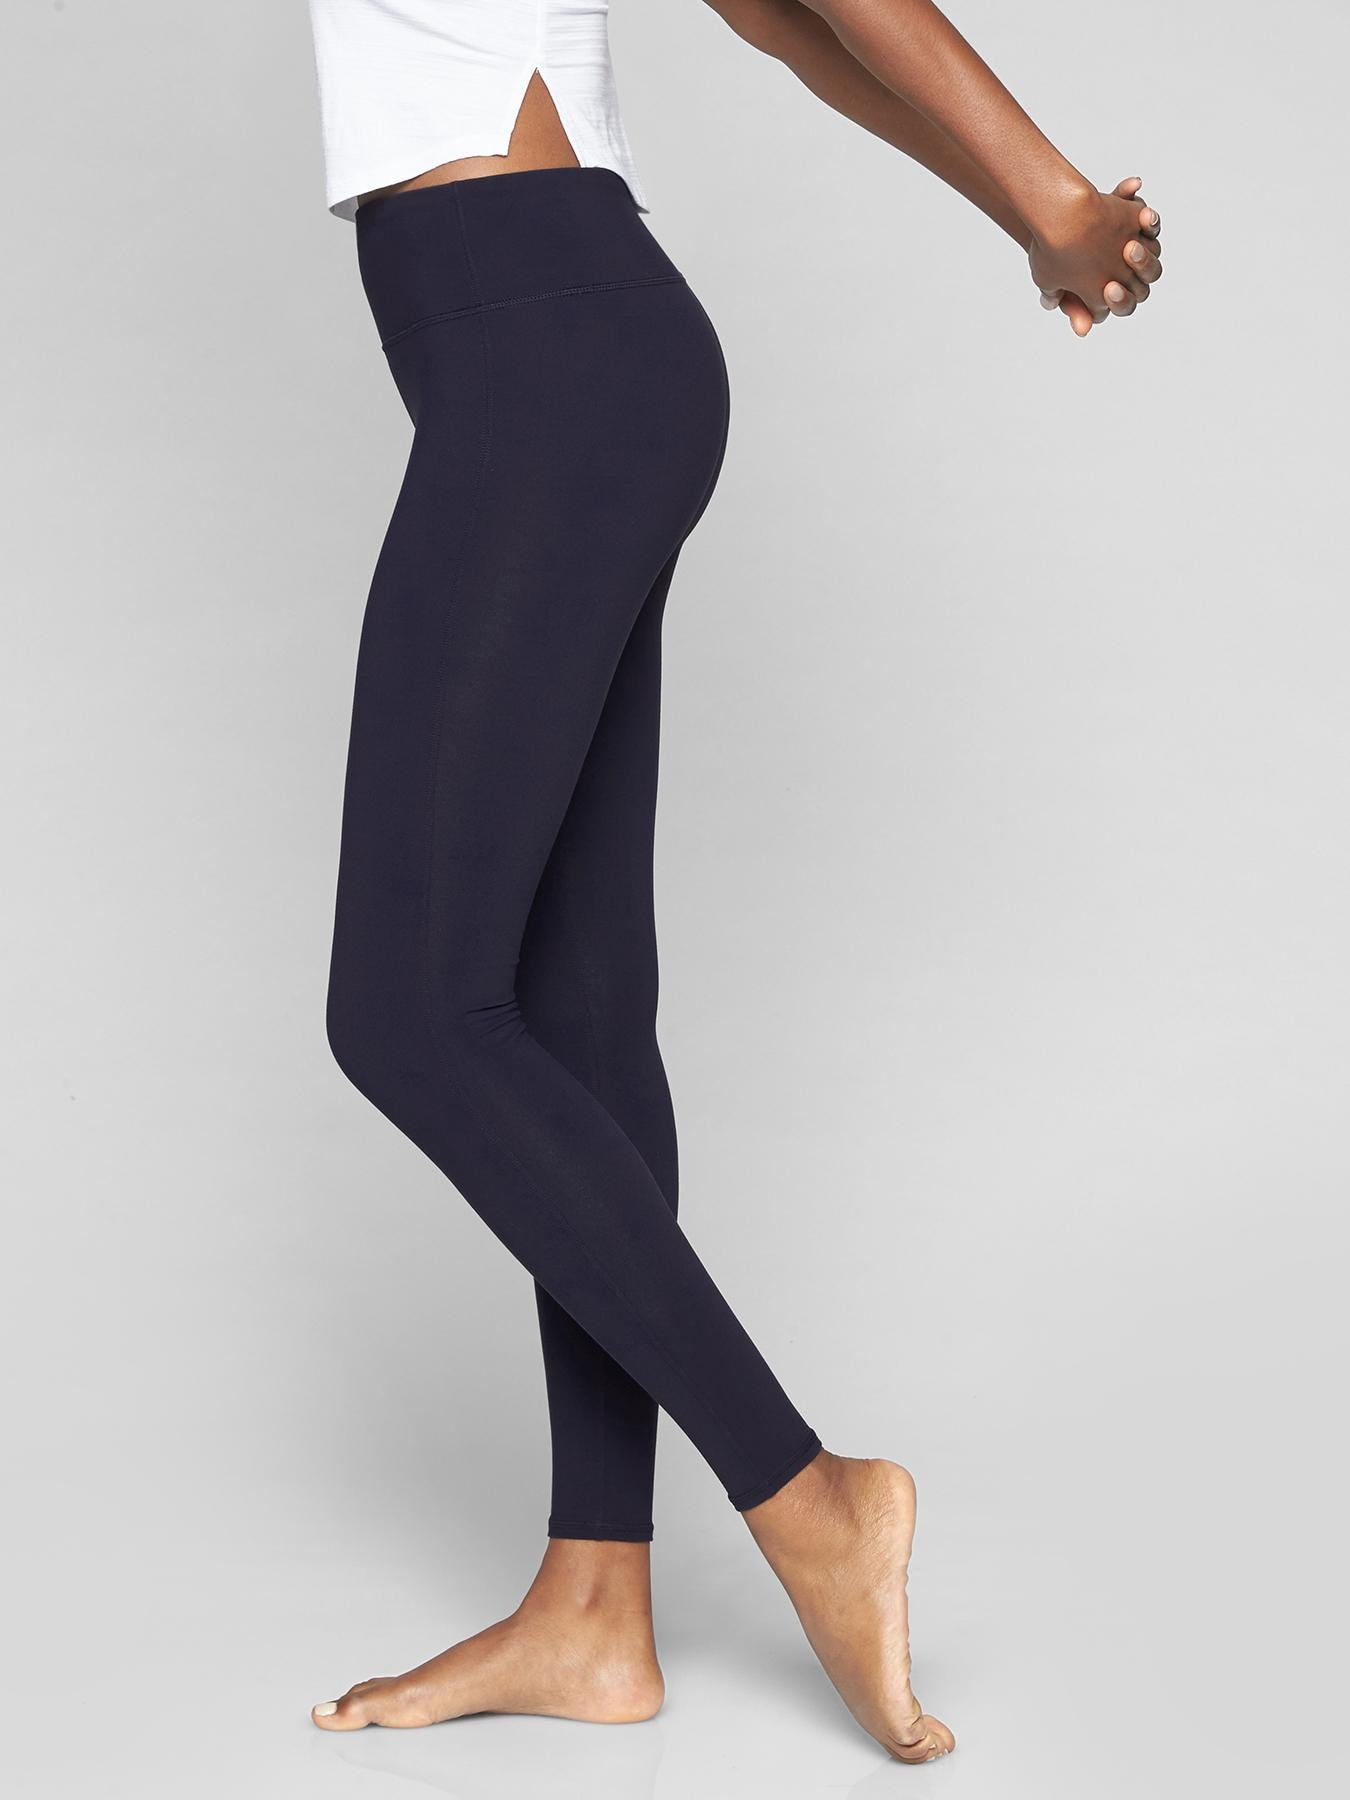 High Rise Chaturanga Tight Athleta